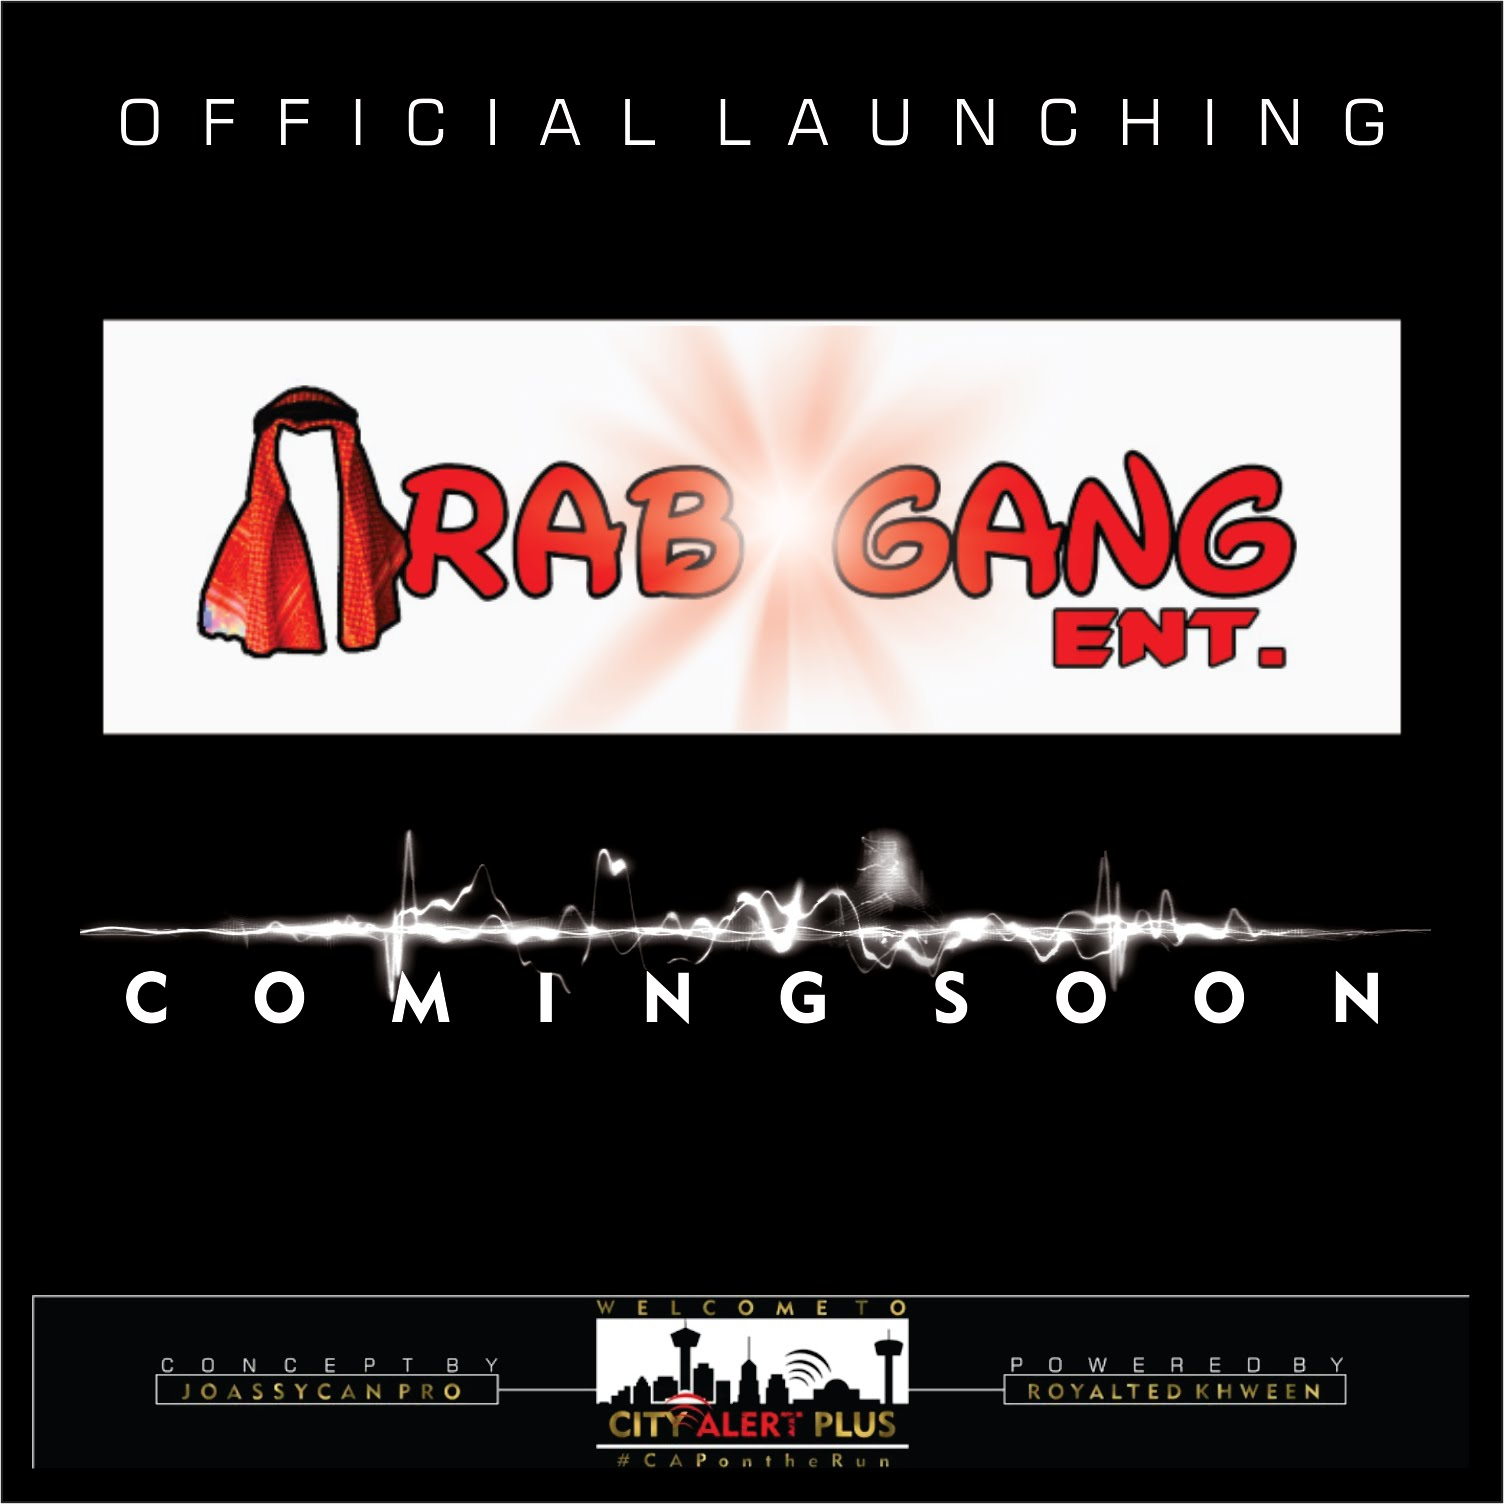 """ARAB GANG ENTERTAINMENT"" Set to Launch Officially #CityAlertPlus"